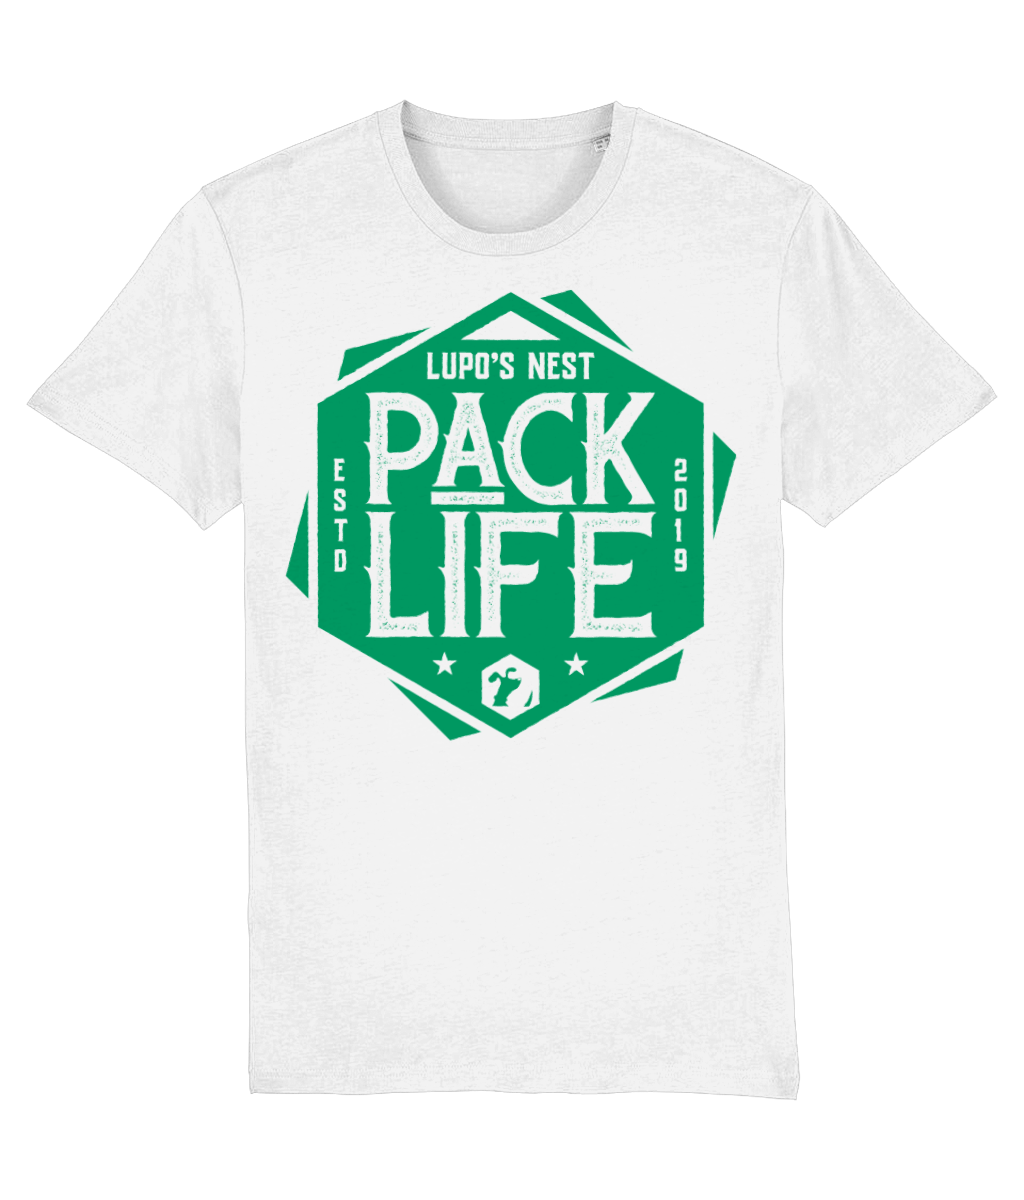 Lupo's Nest | 'Pack Life' Organic Cotton T-shirt - Green Logo